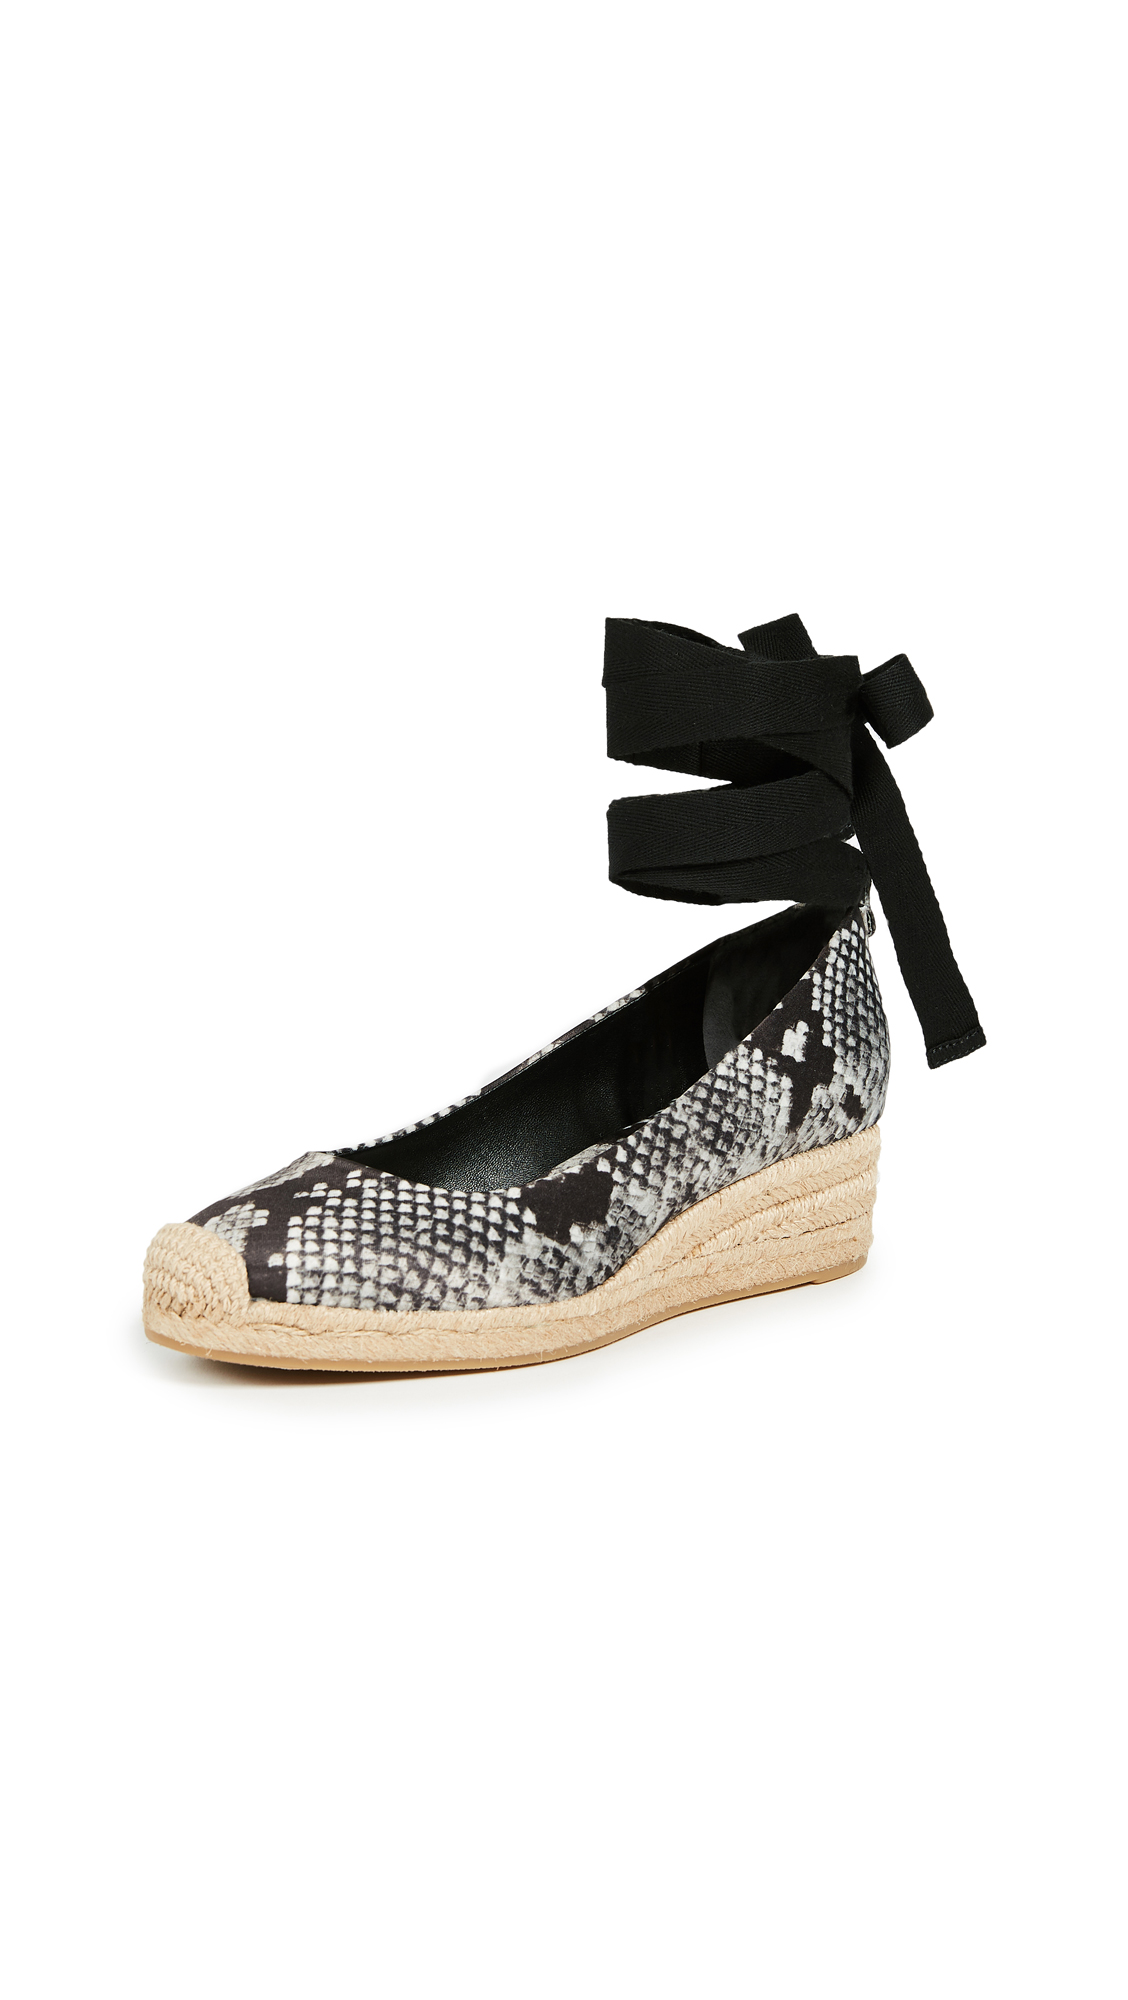 Tory Burch Heather 40mm Wedge Espadrilles - Roccia